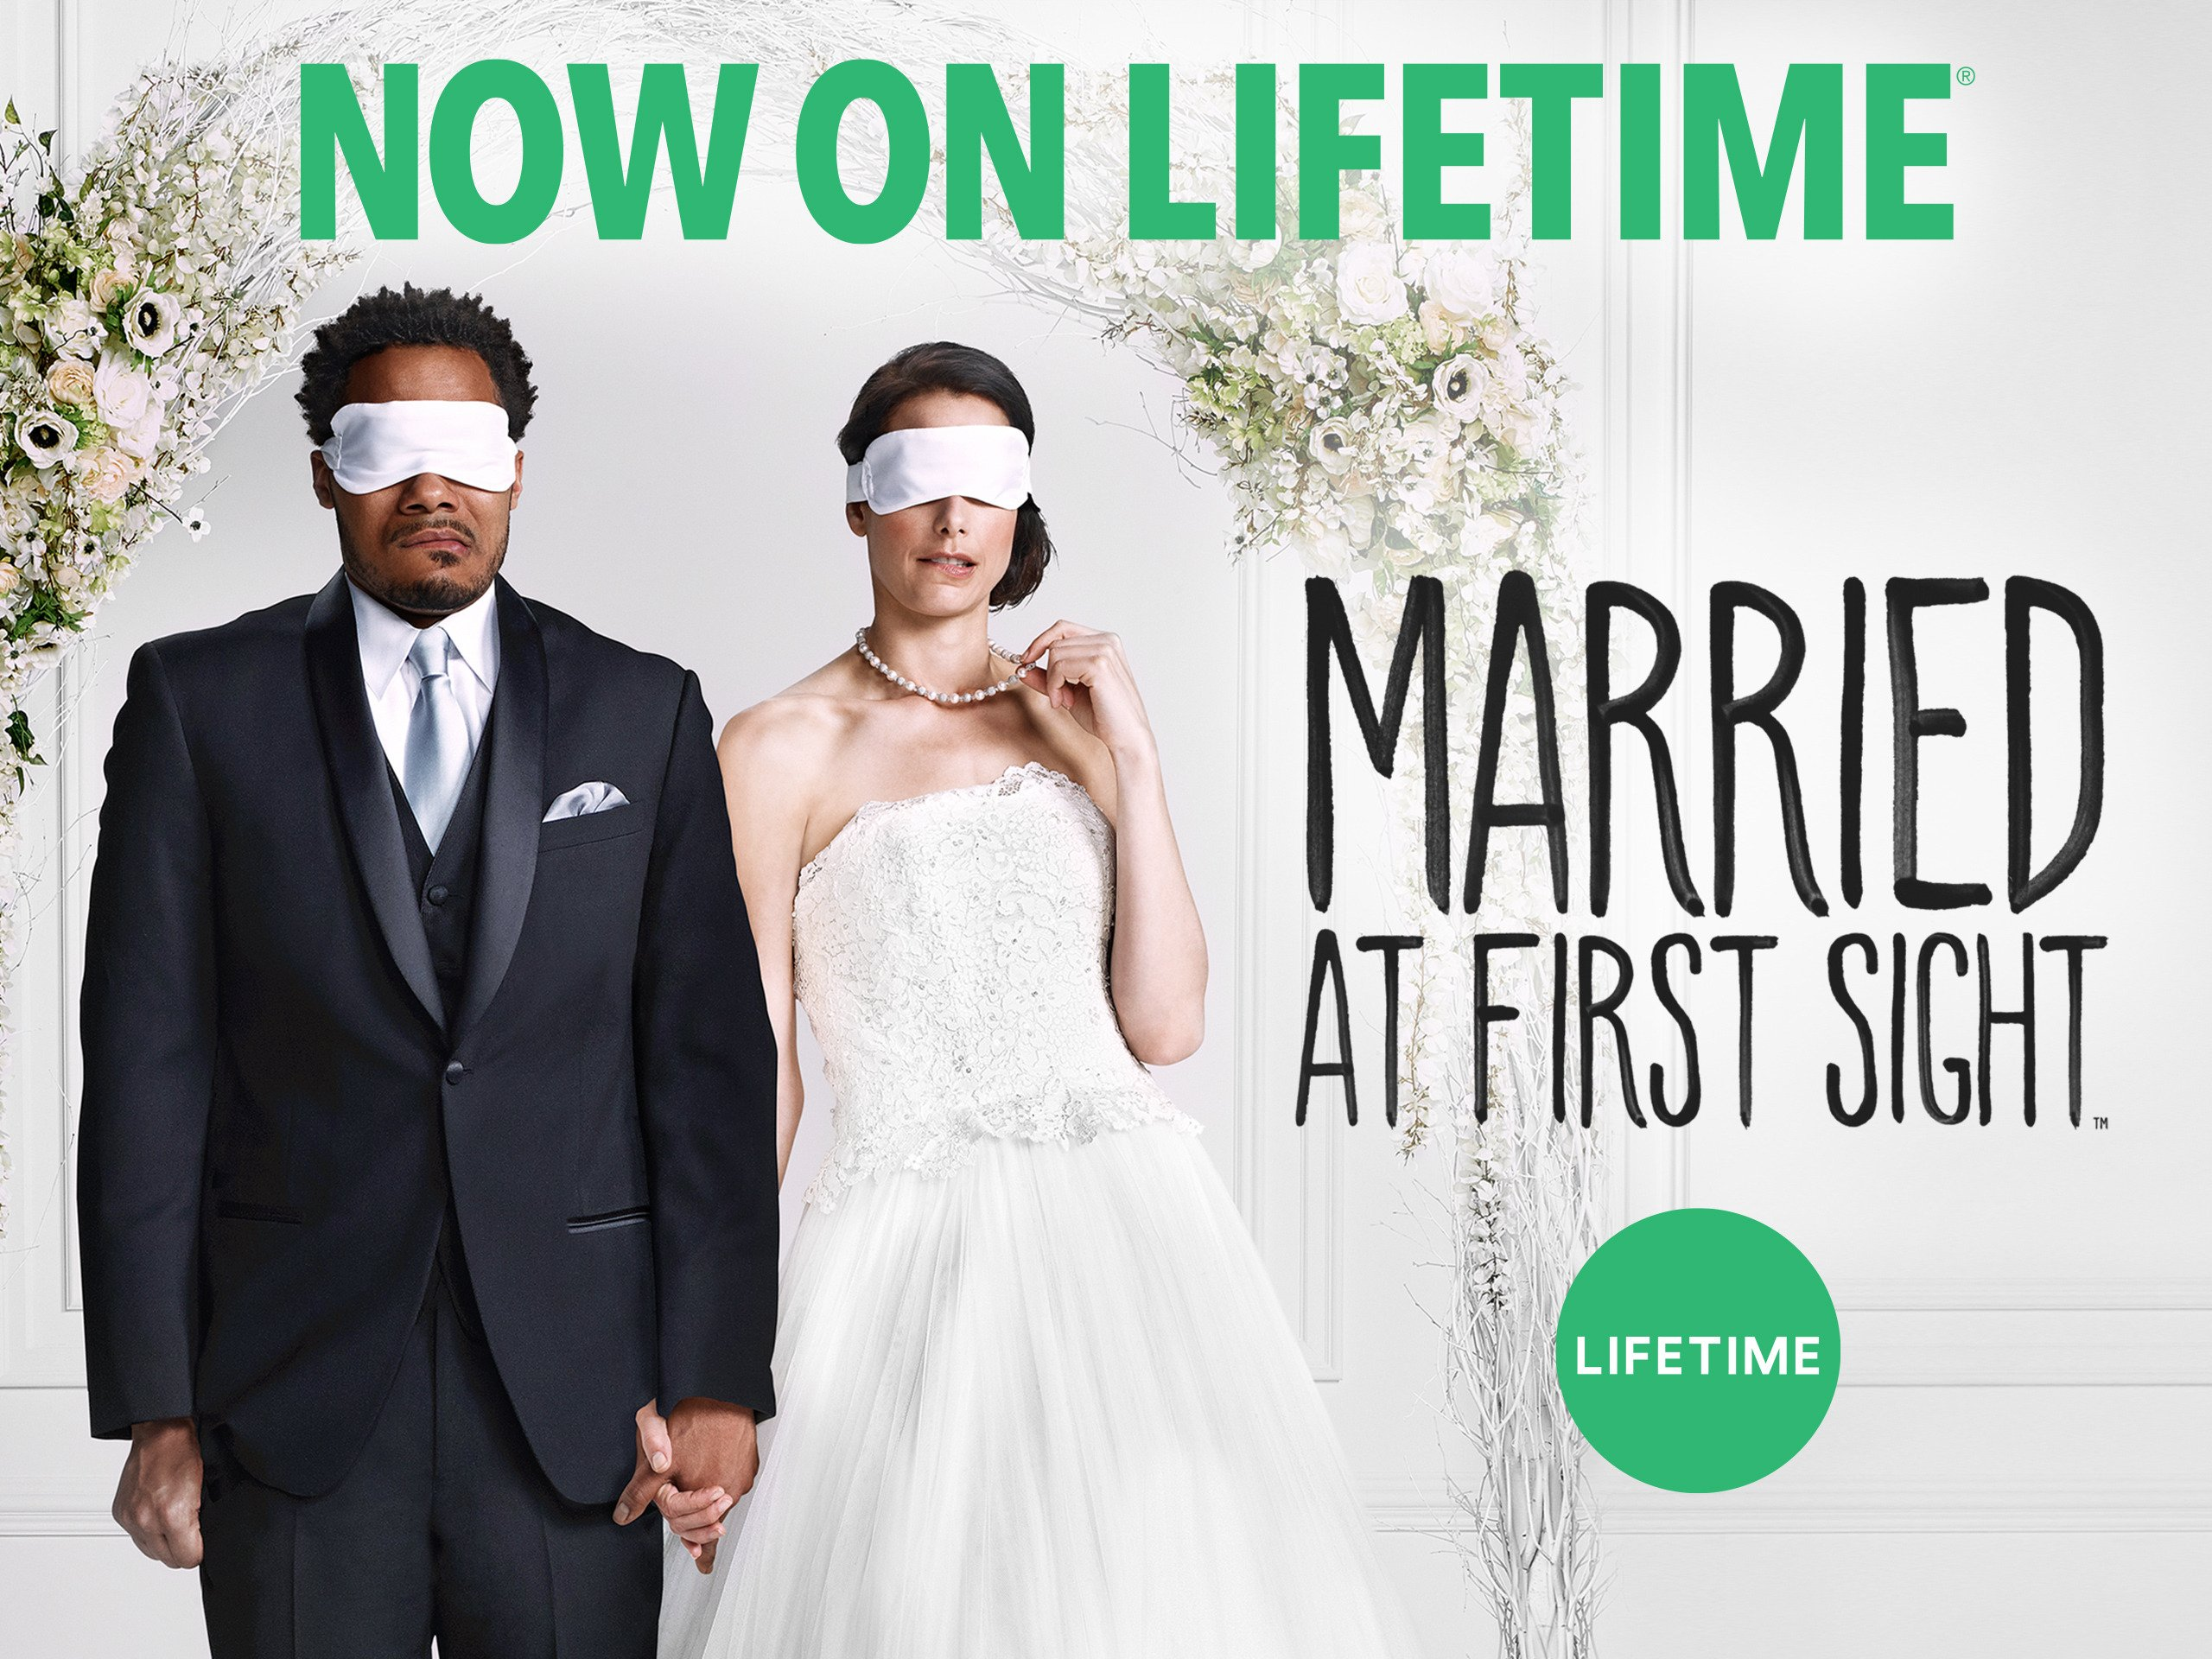 Love at first sight marriage statistics